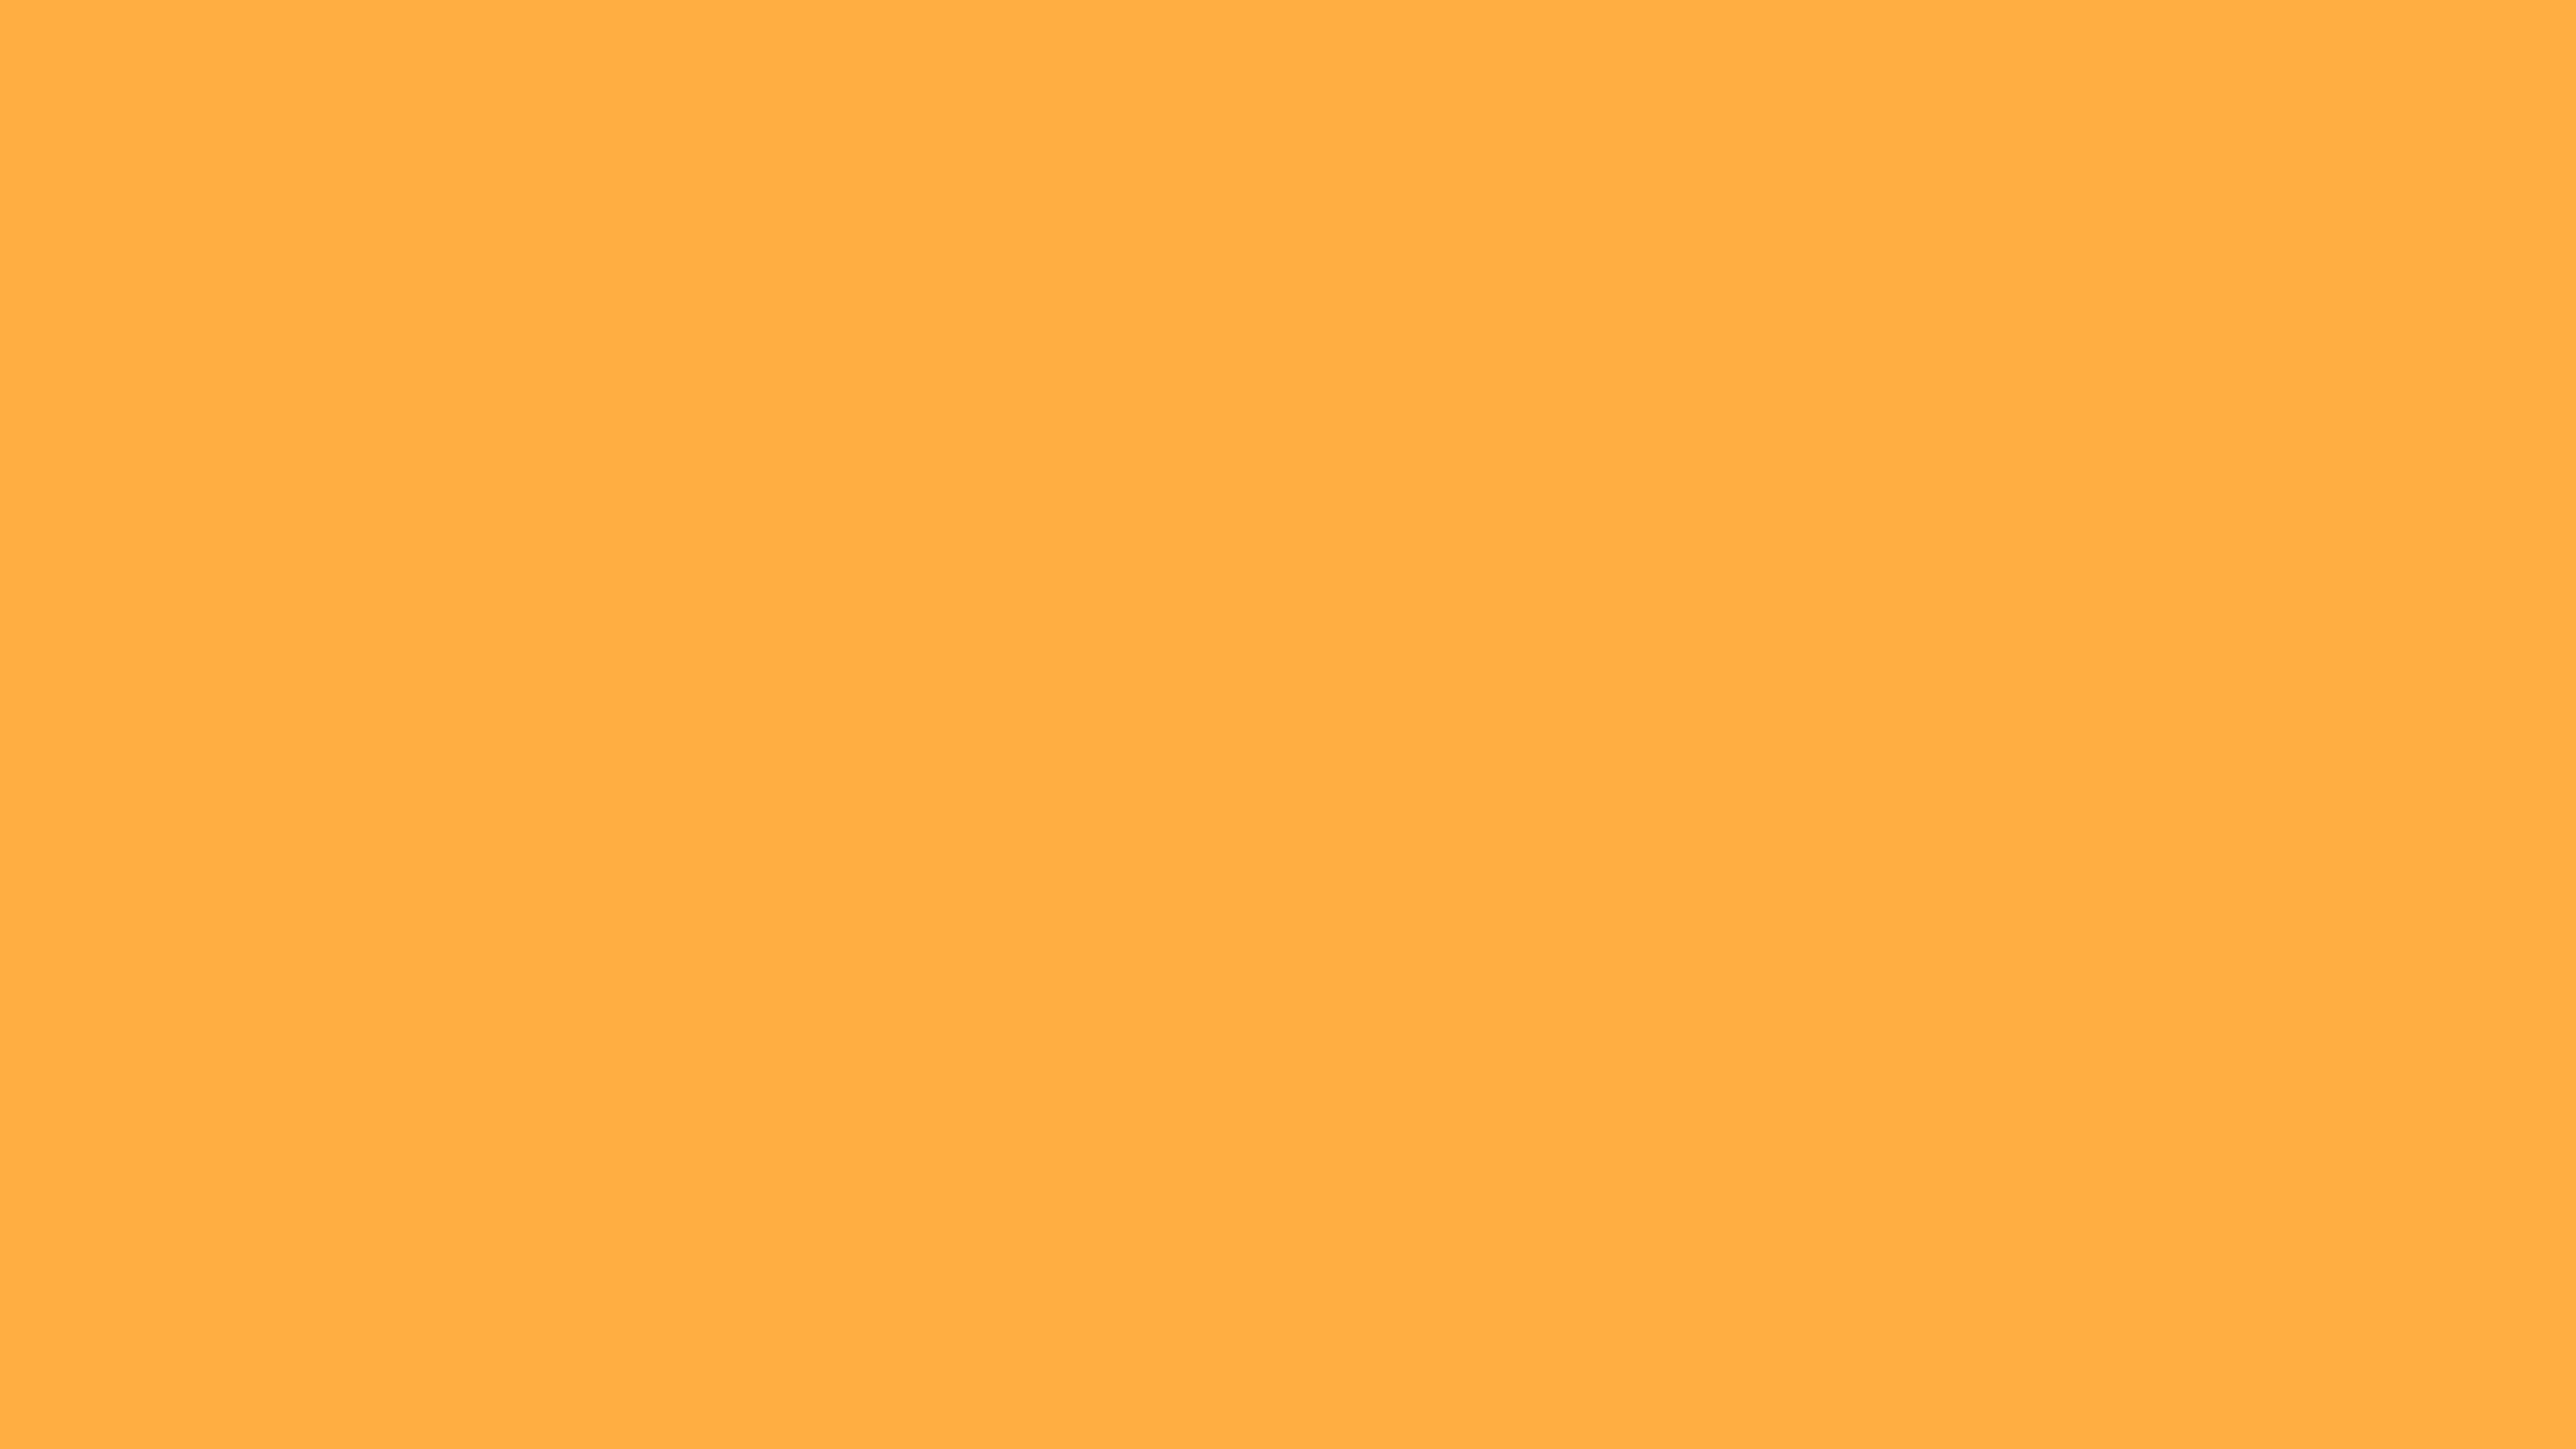 7680x4320 Yellow Orange Solid Color Background